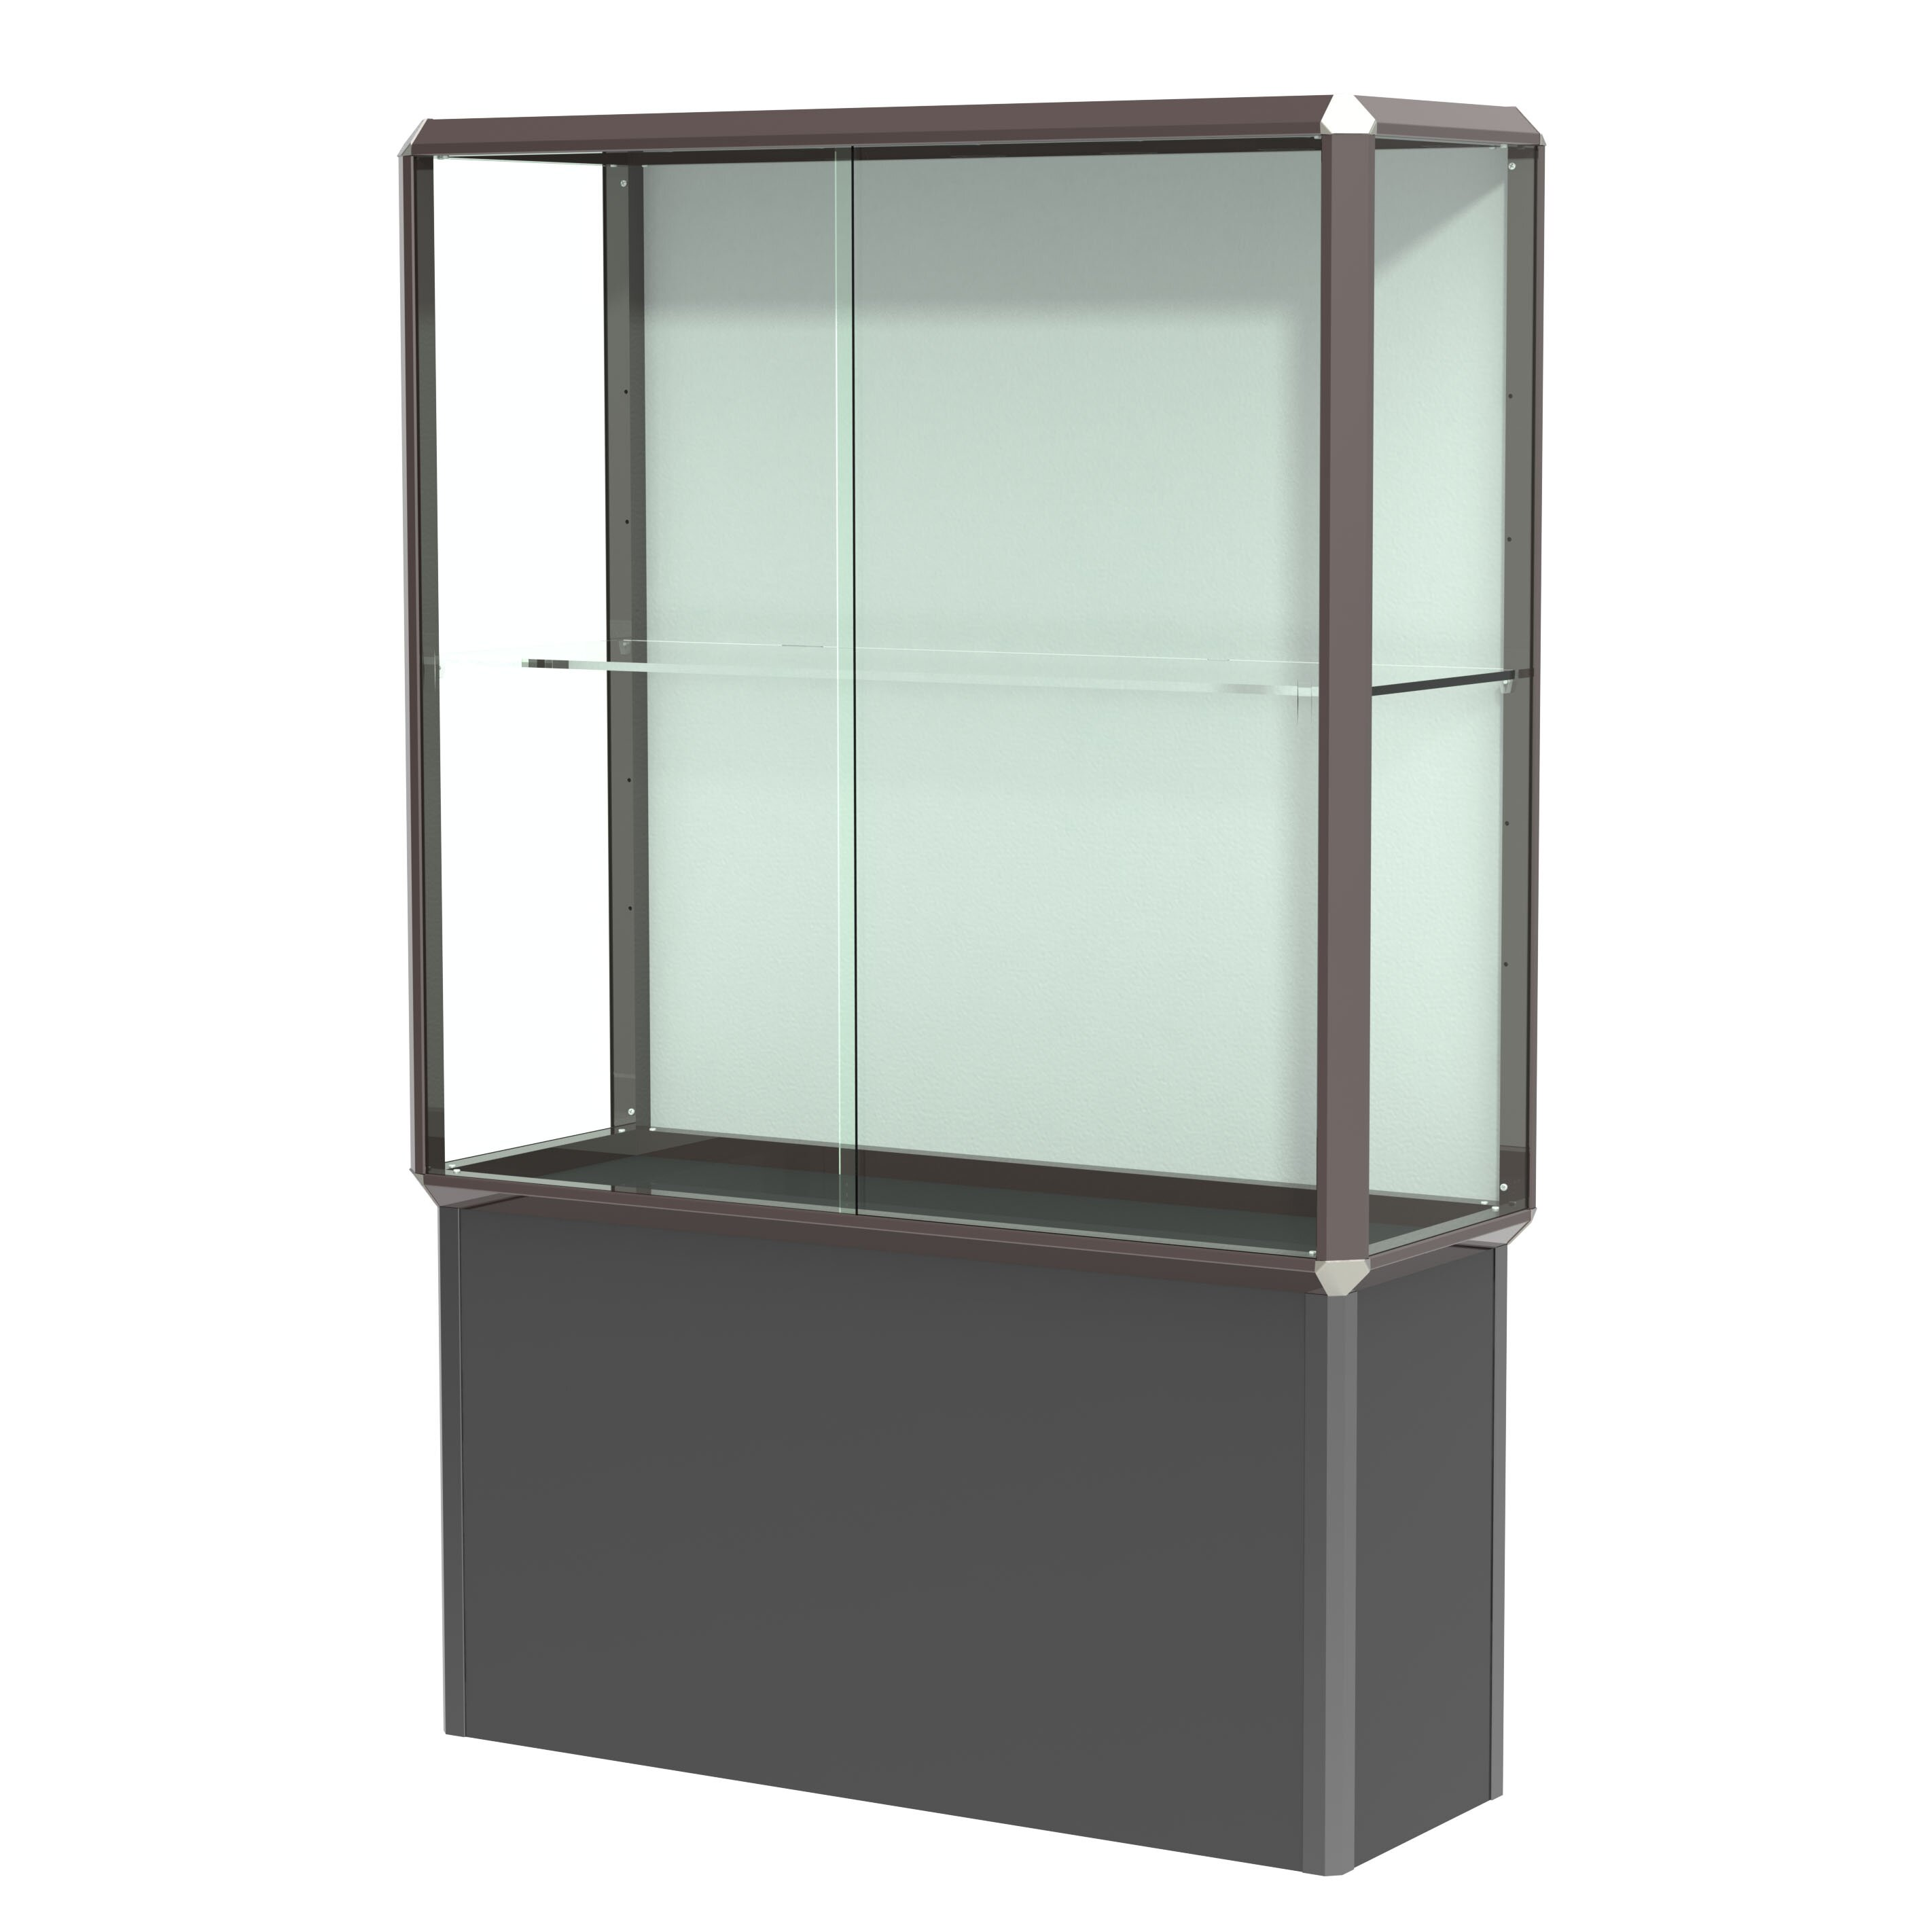 #547765 Waddell Prominence Spotlight Series Tower Display Case  with 2844x2844 px of Brand New Glass Display Cabinet Tower 28442844 pic @ avoidforclosure.info